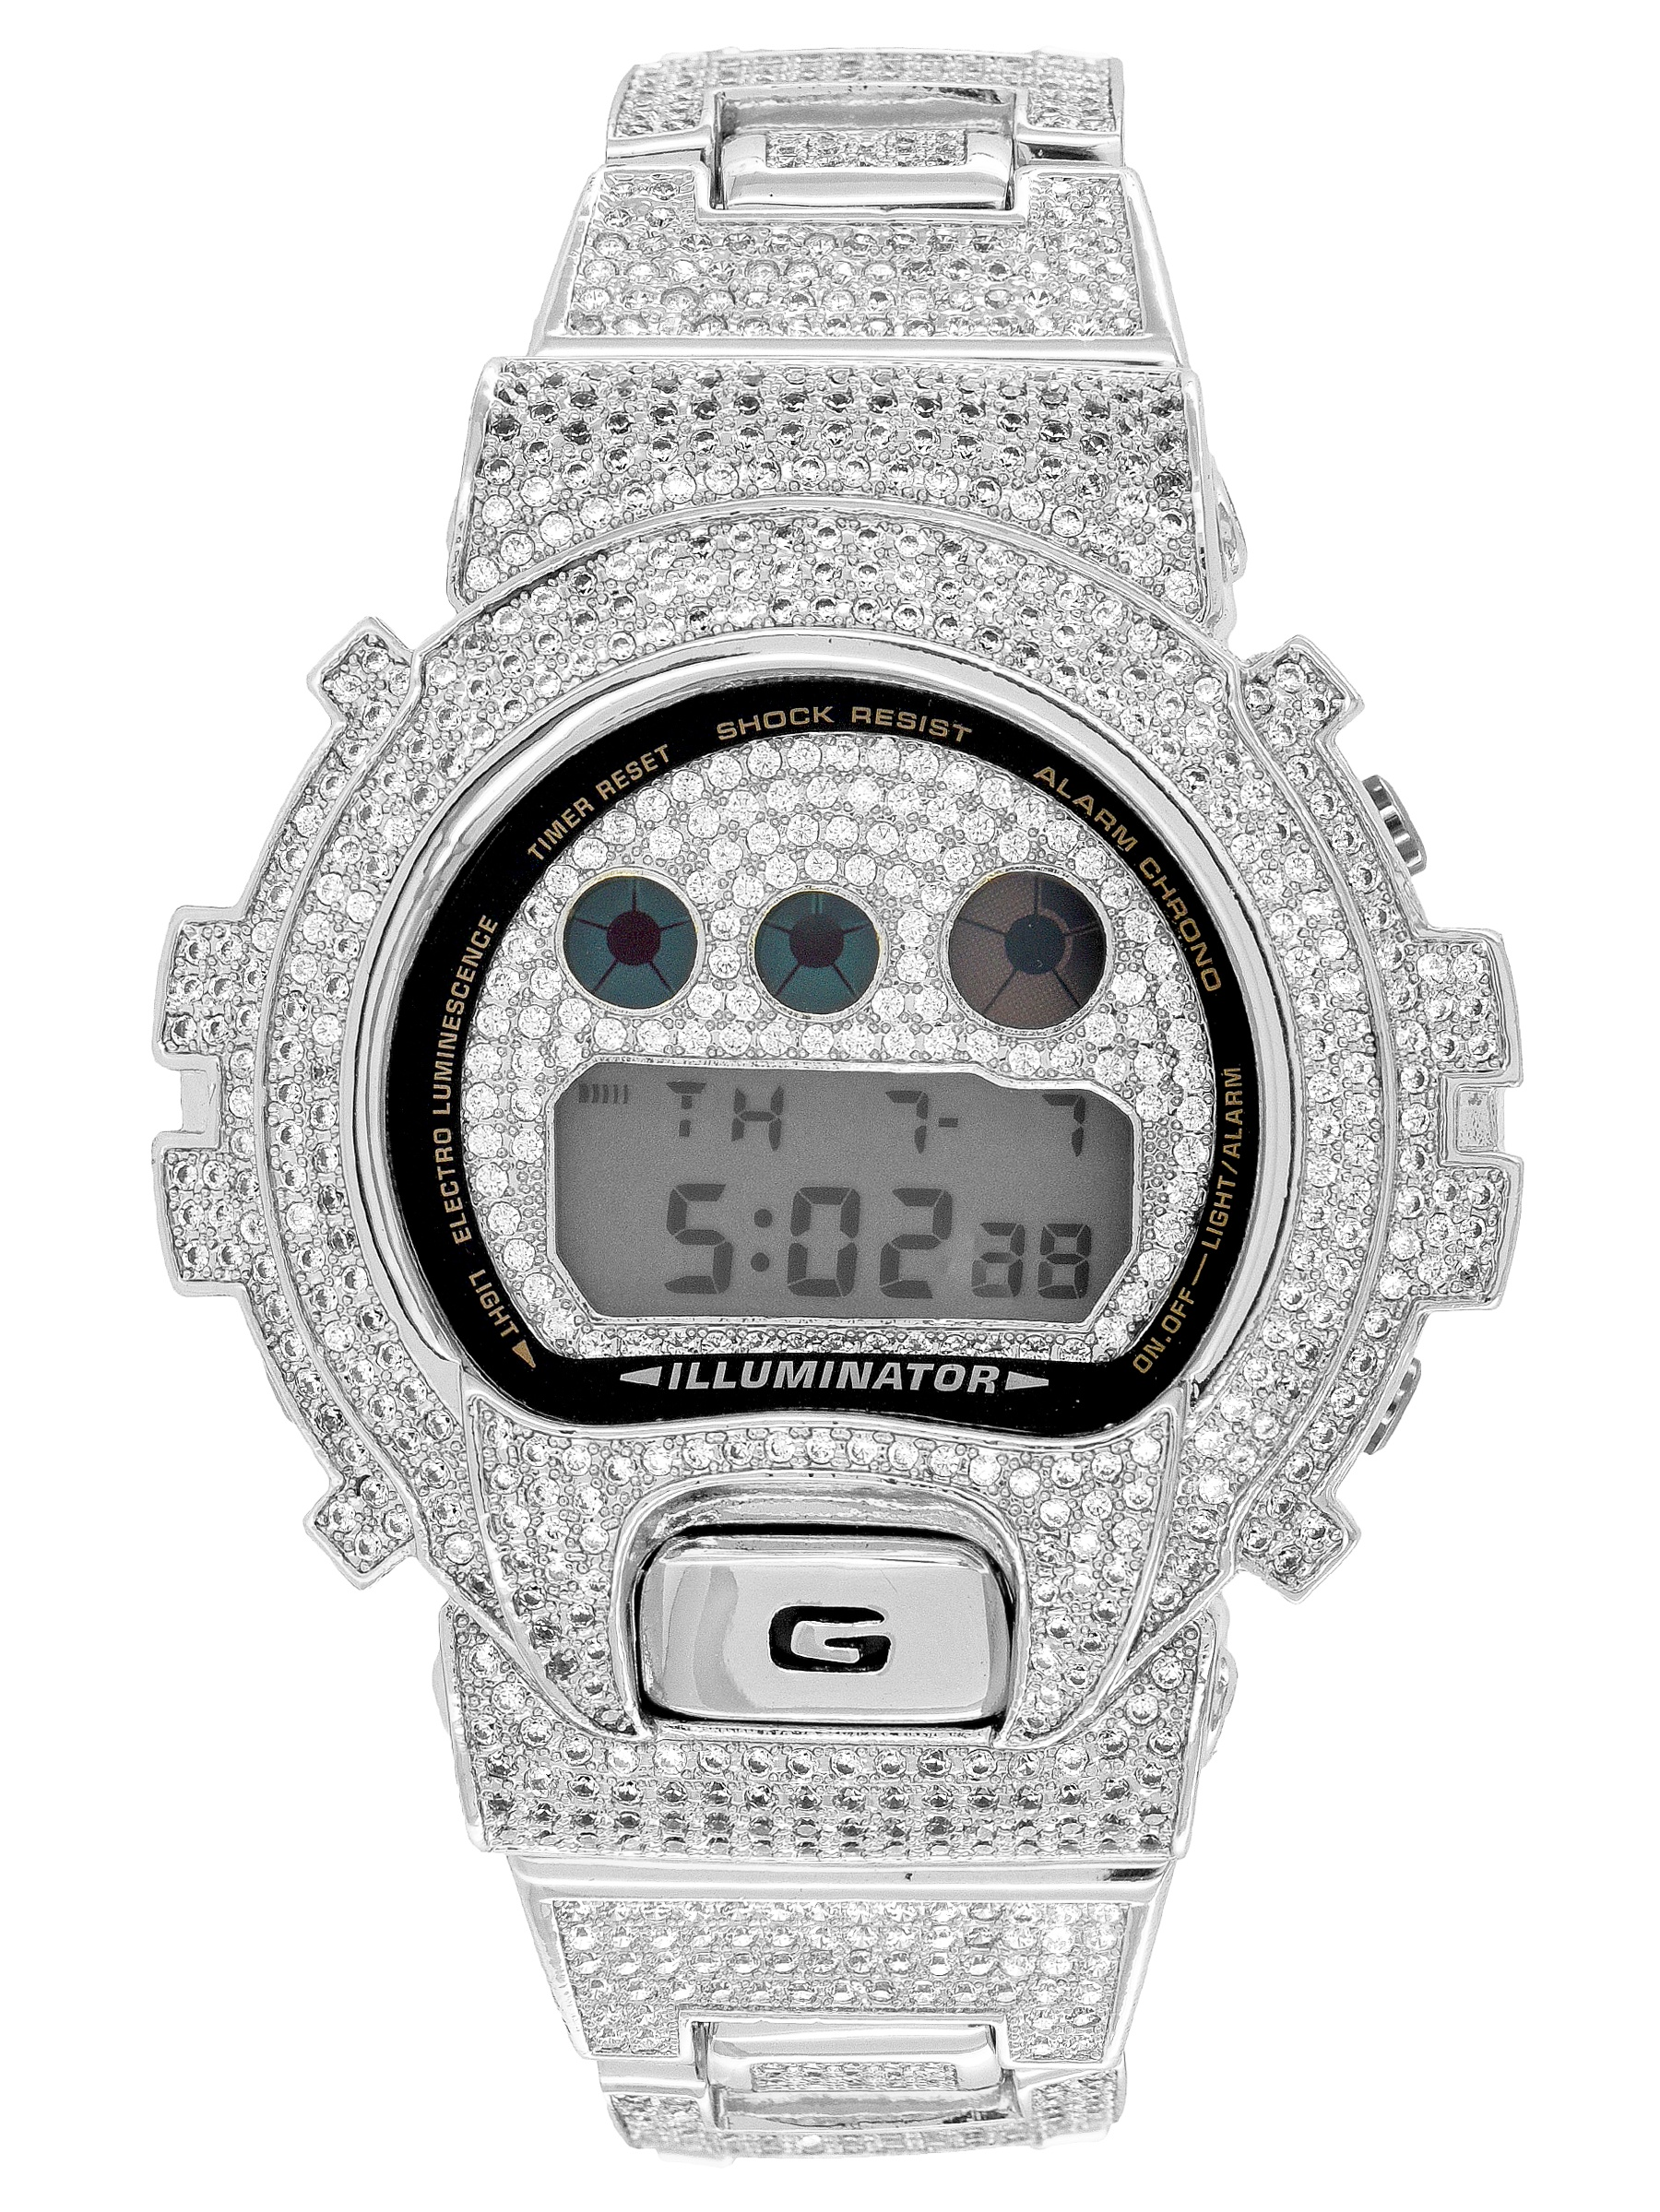 Designer G Shock Watch Iced Out Black Finish DW6900 Simulated Diamonds Sale